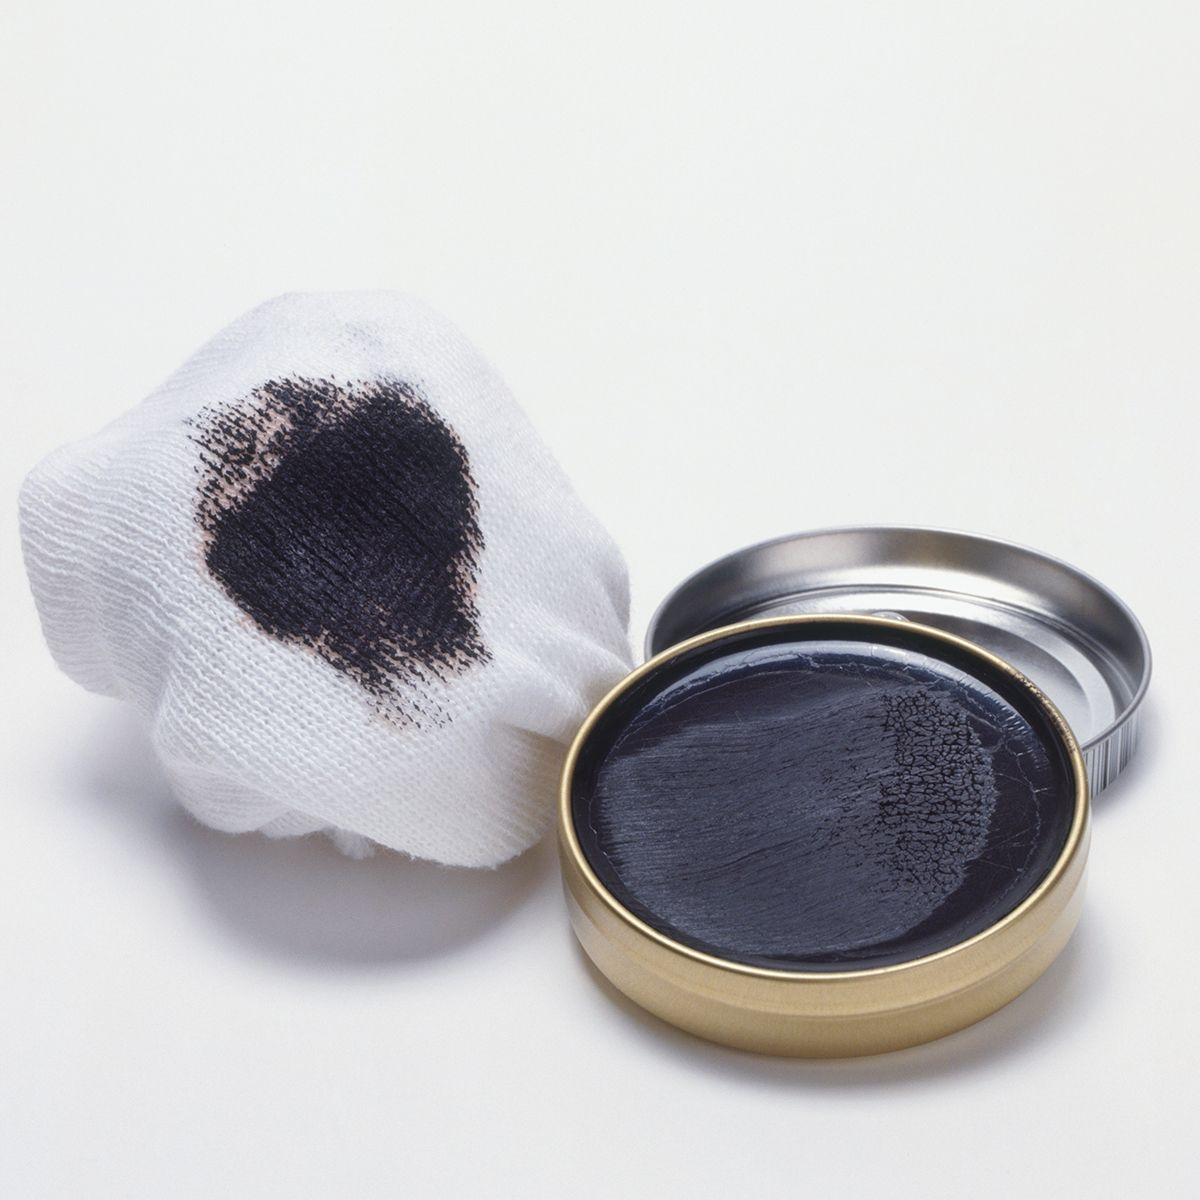 Shoe Polish Stain Removal How To Remove Shoe Polish Stains